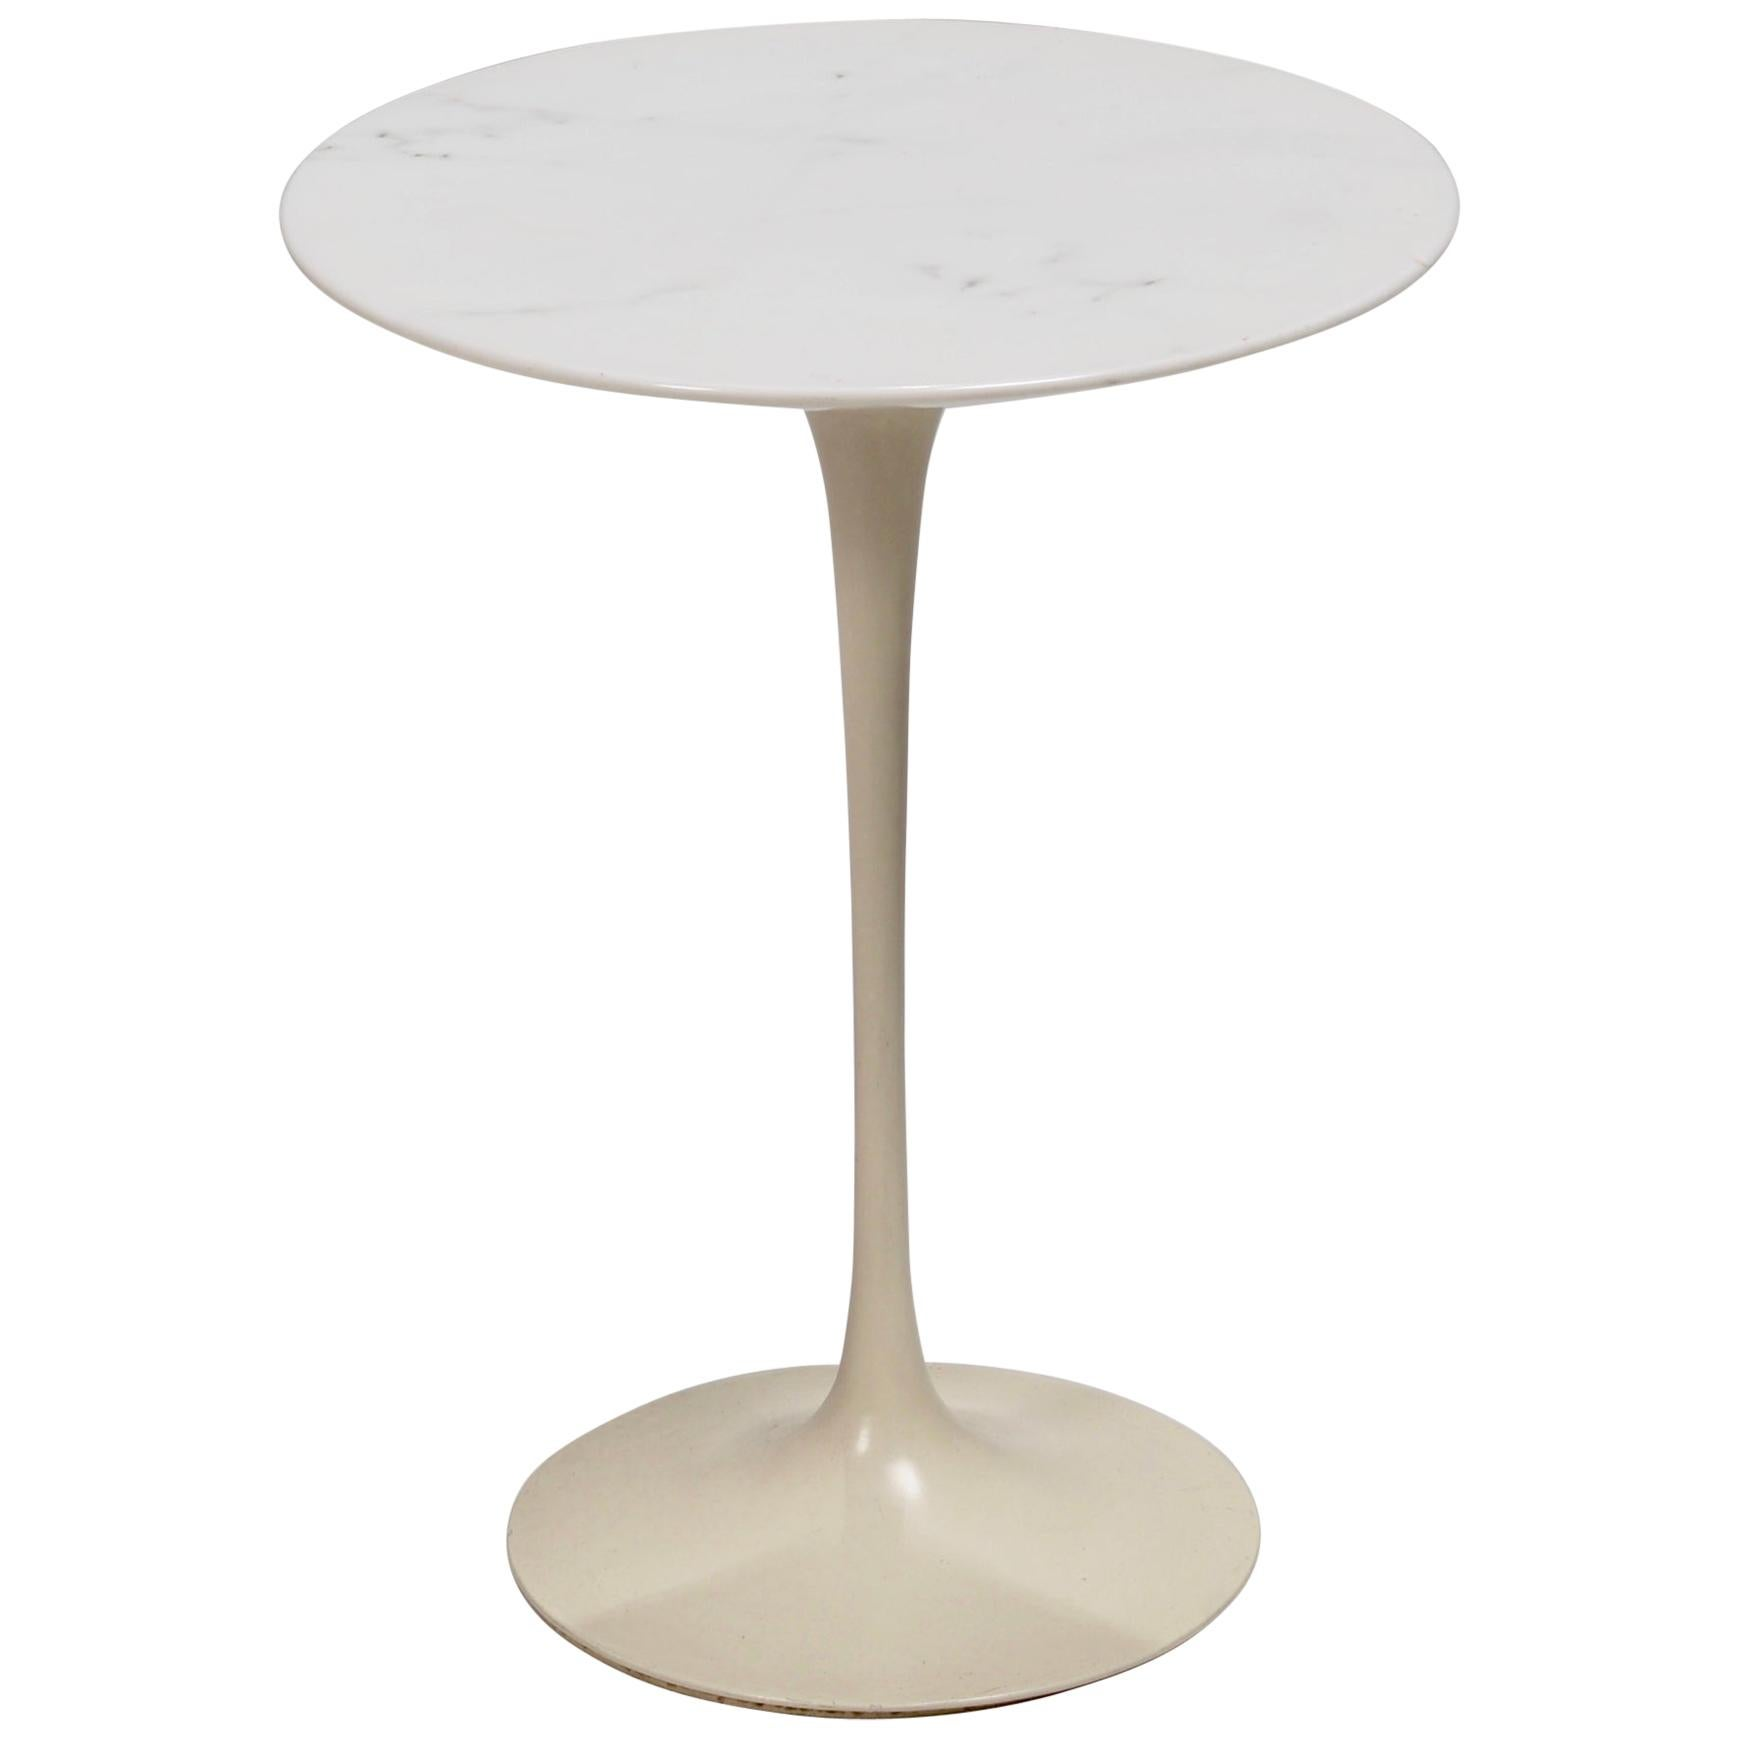 Eero Saarinen Tulip Side Table for Knoll